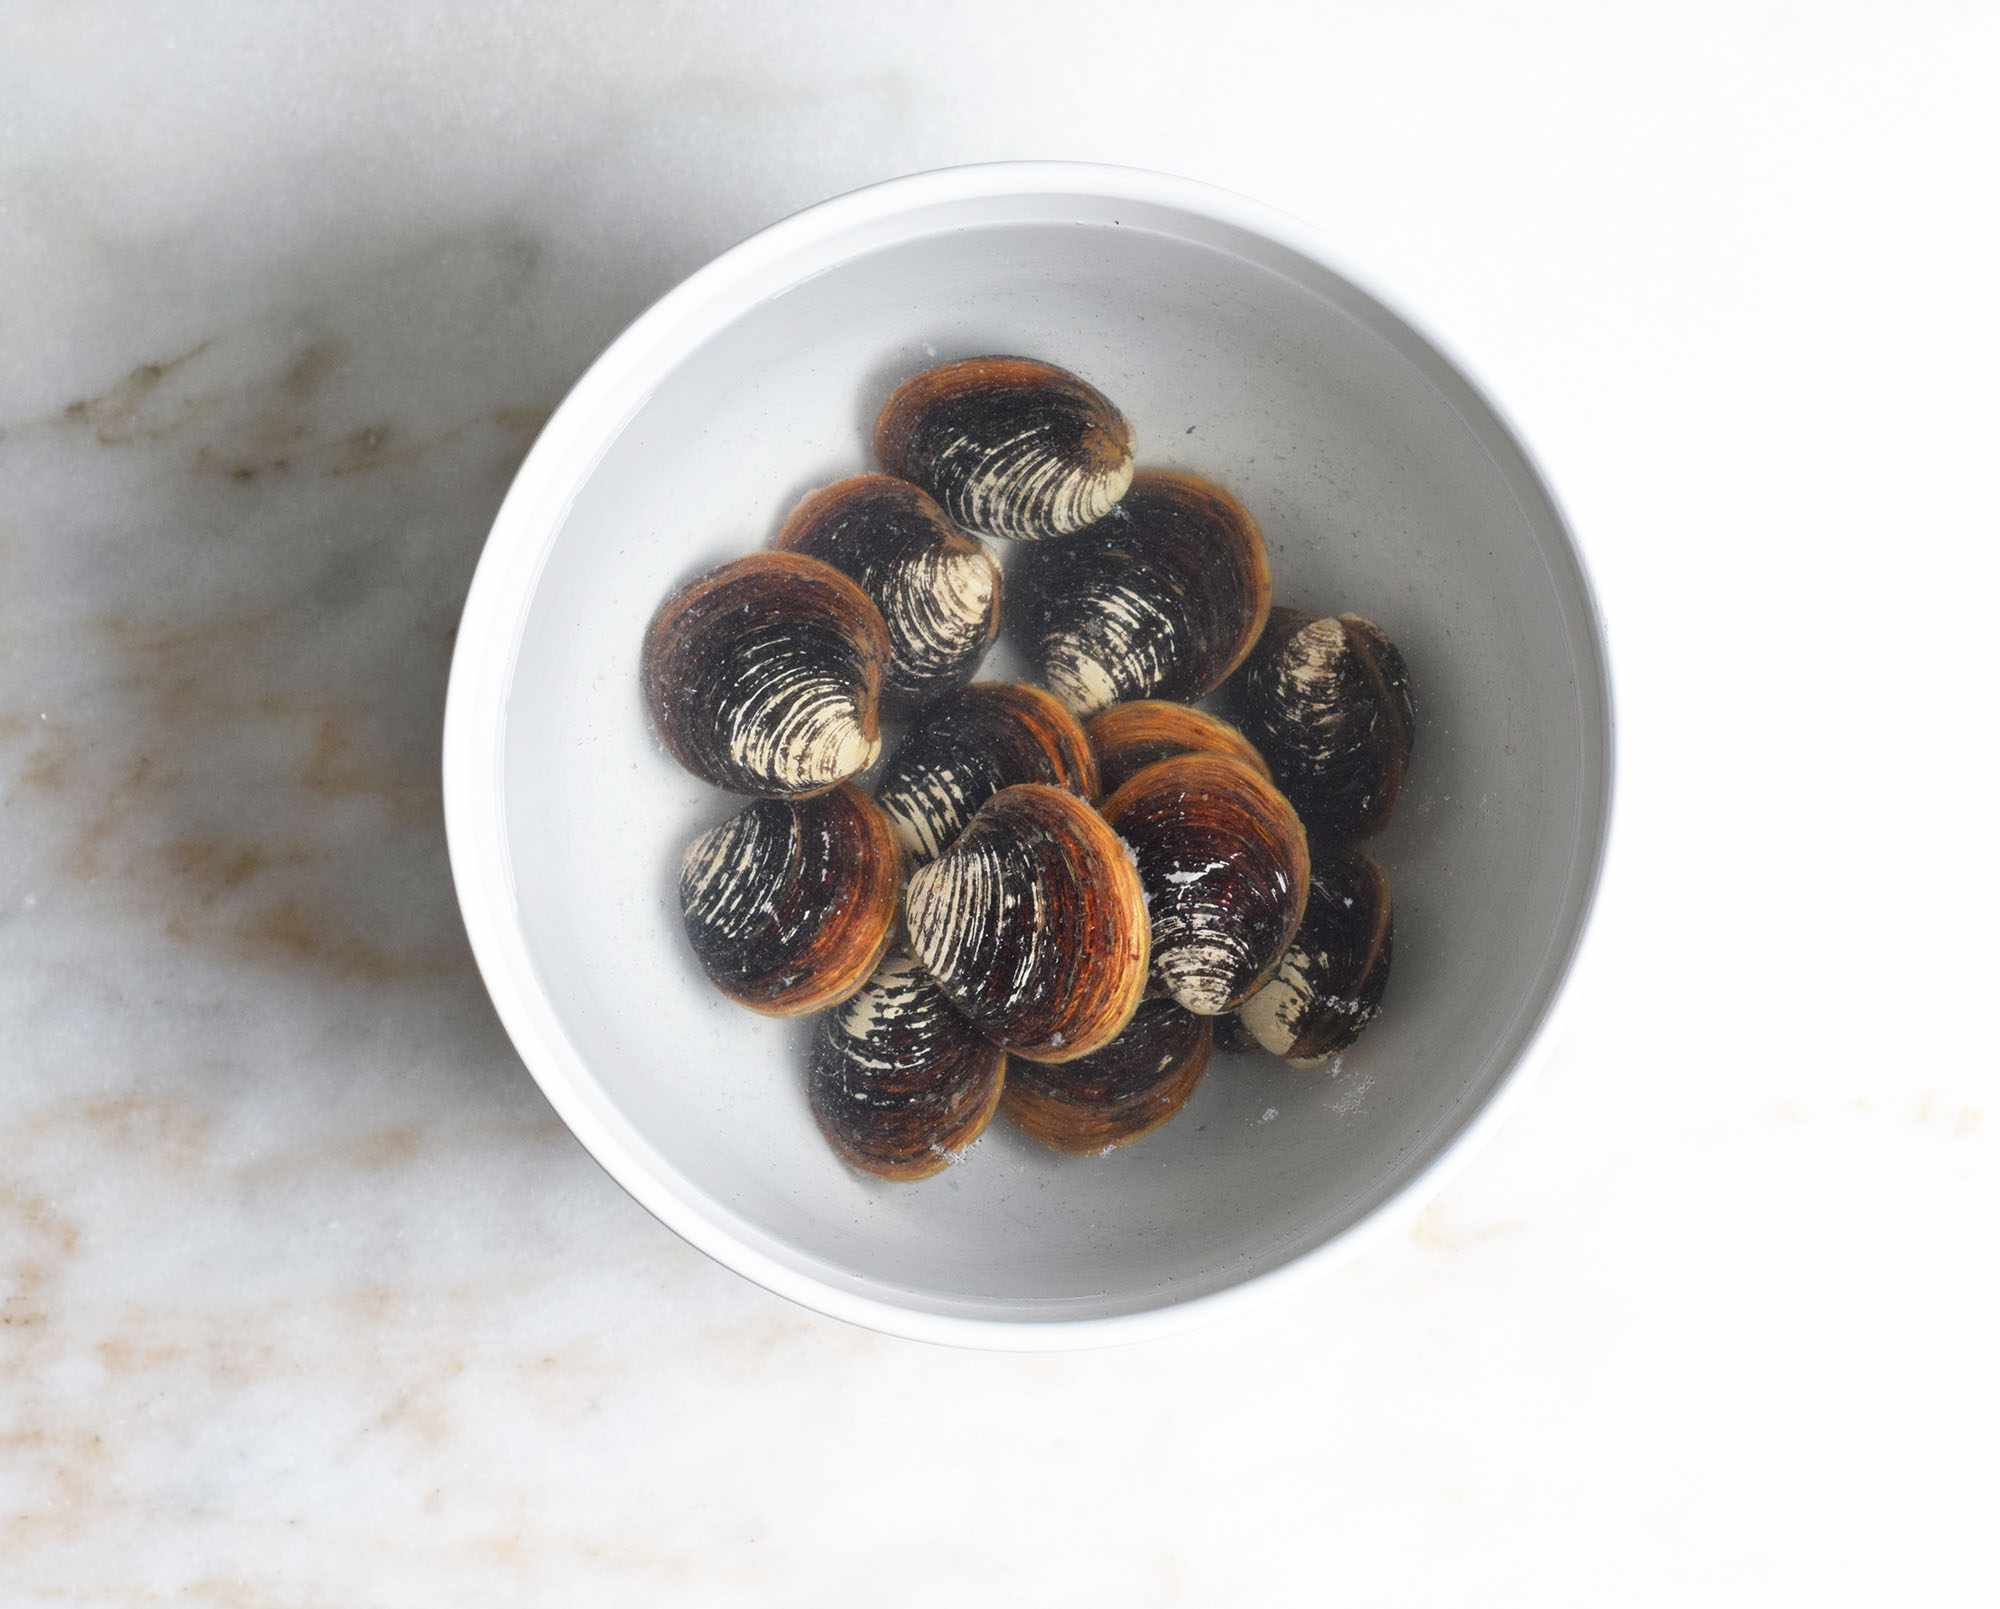 clams soaking in cold water